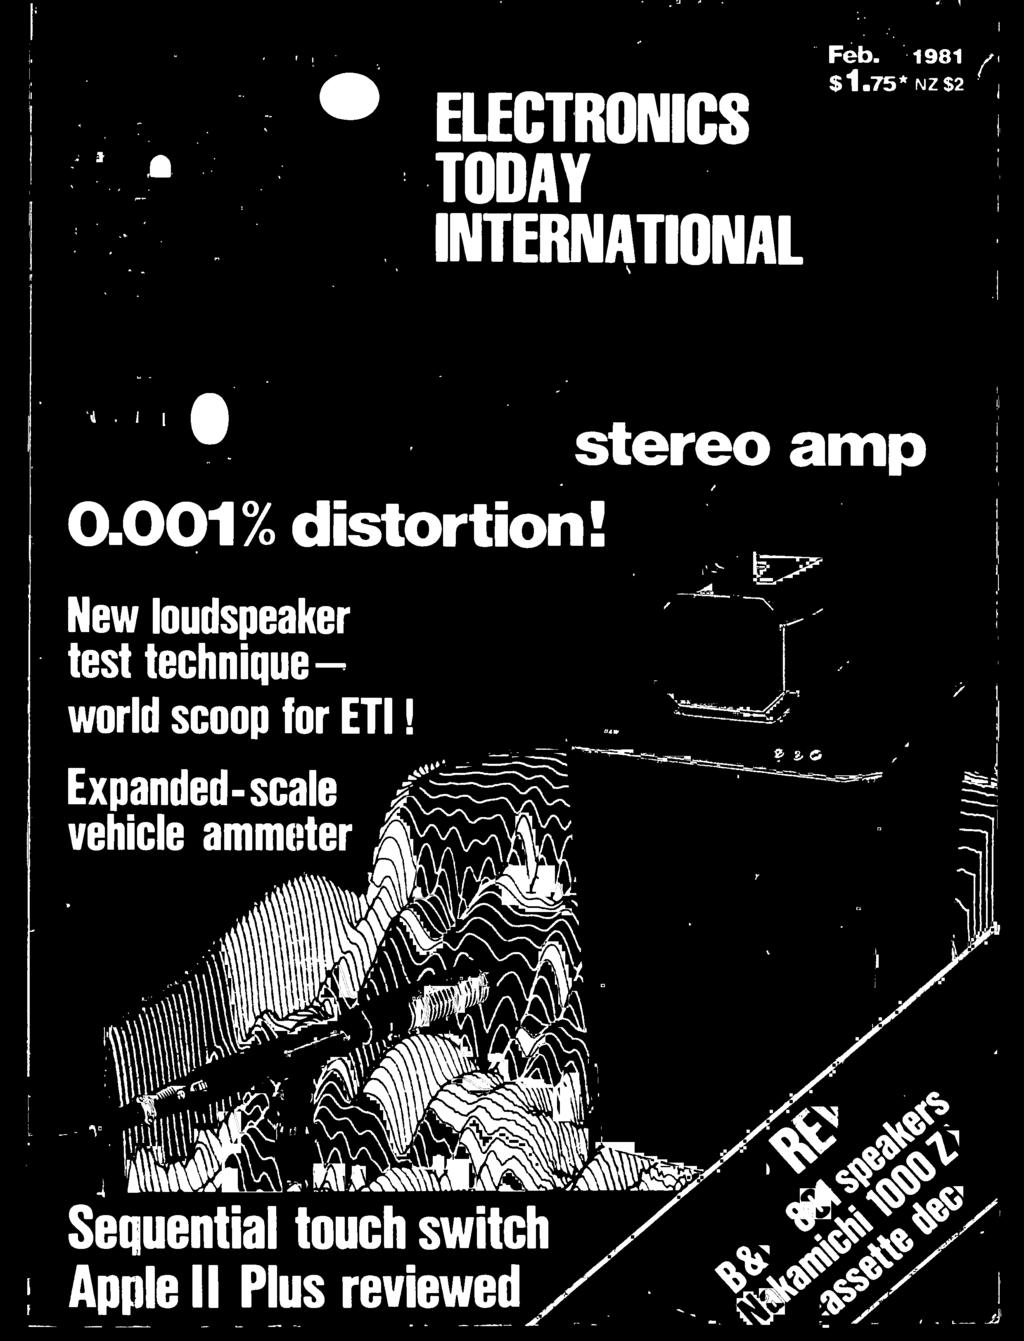 Ile Stereo Amp Distortion International Today Electronics Wiring Diagram 2 Humbuckers 3way Lever Switch 1 Volume 0tone 001 Scoop For Eti